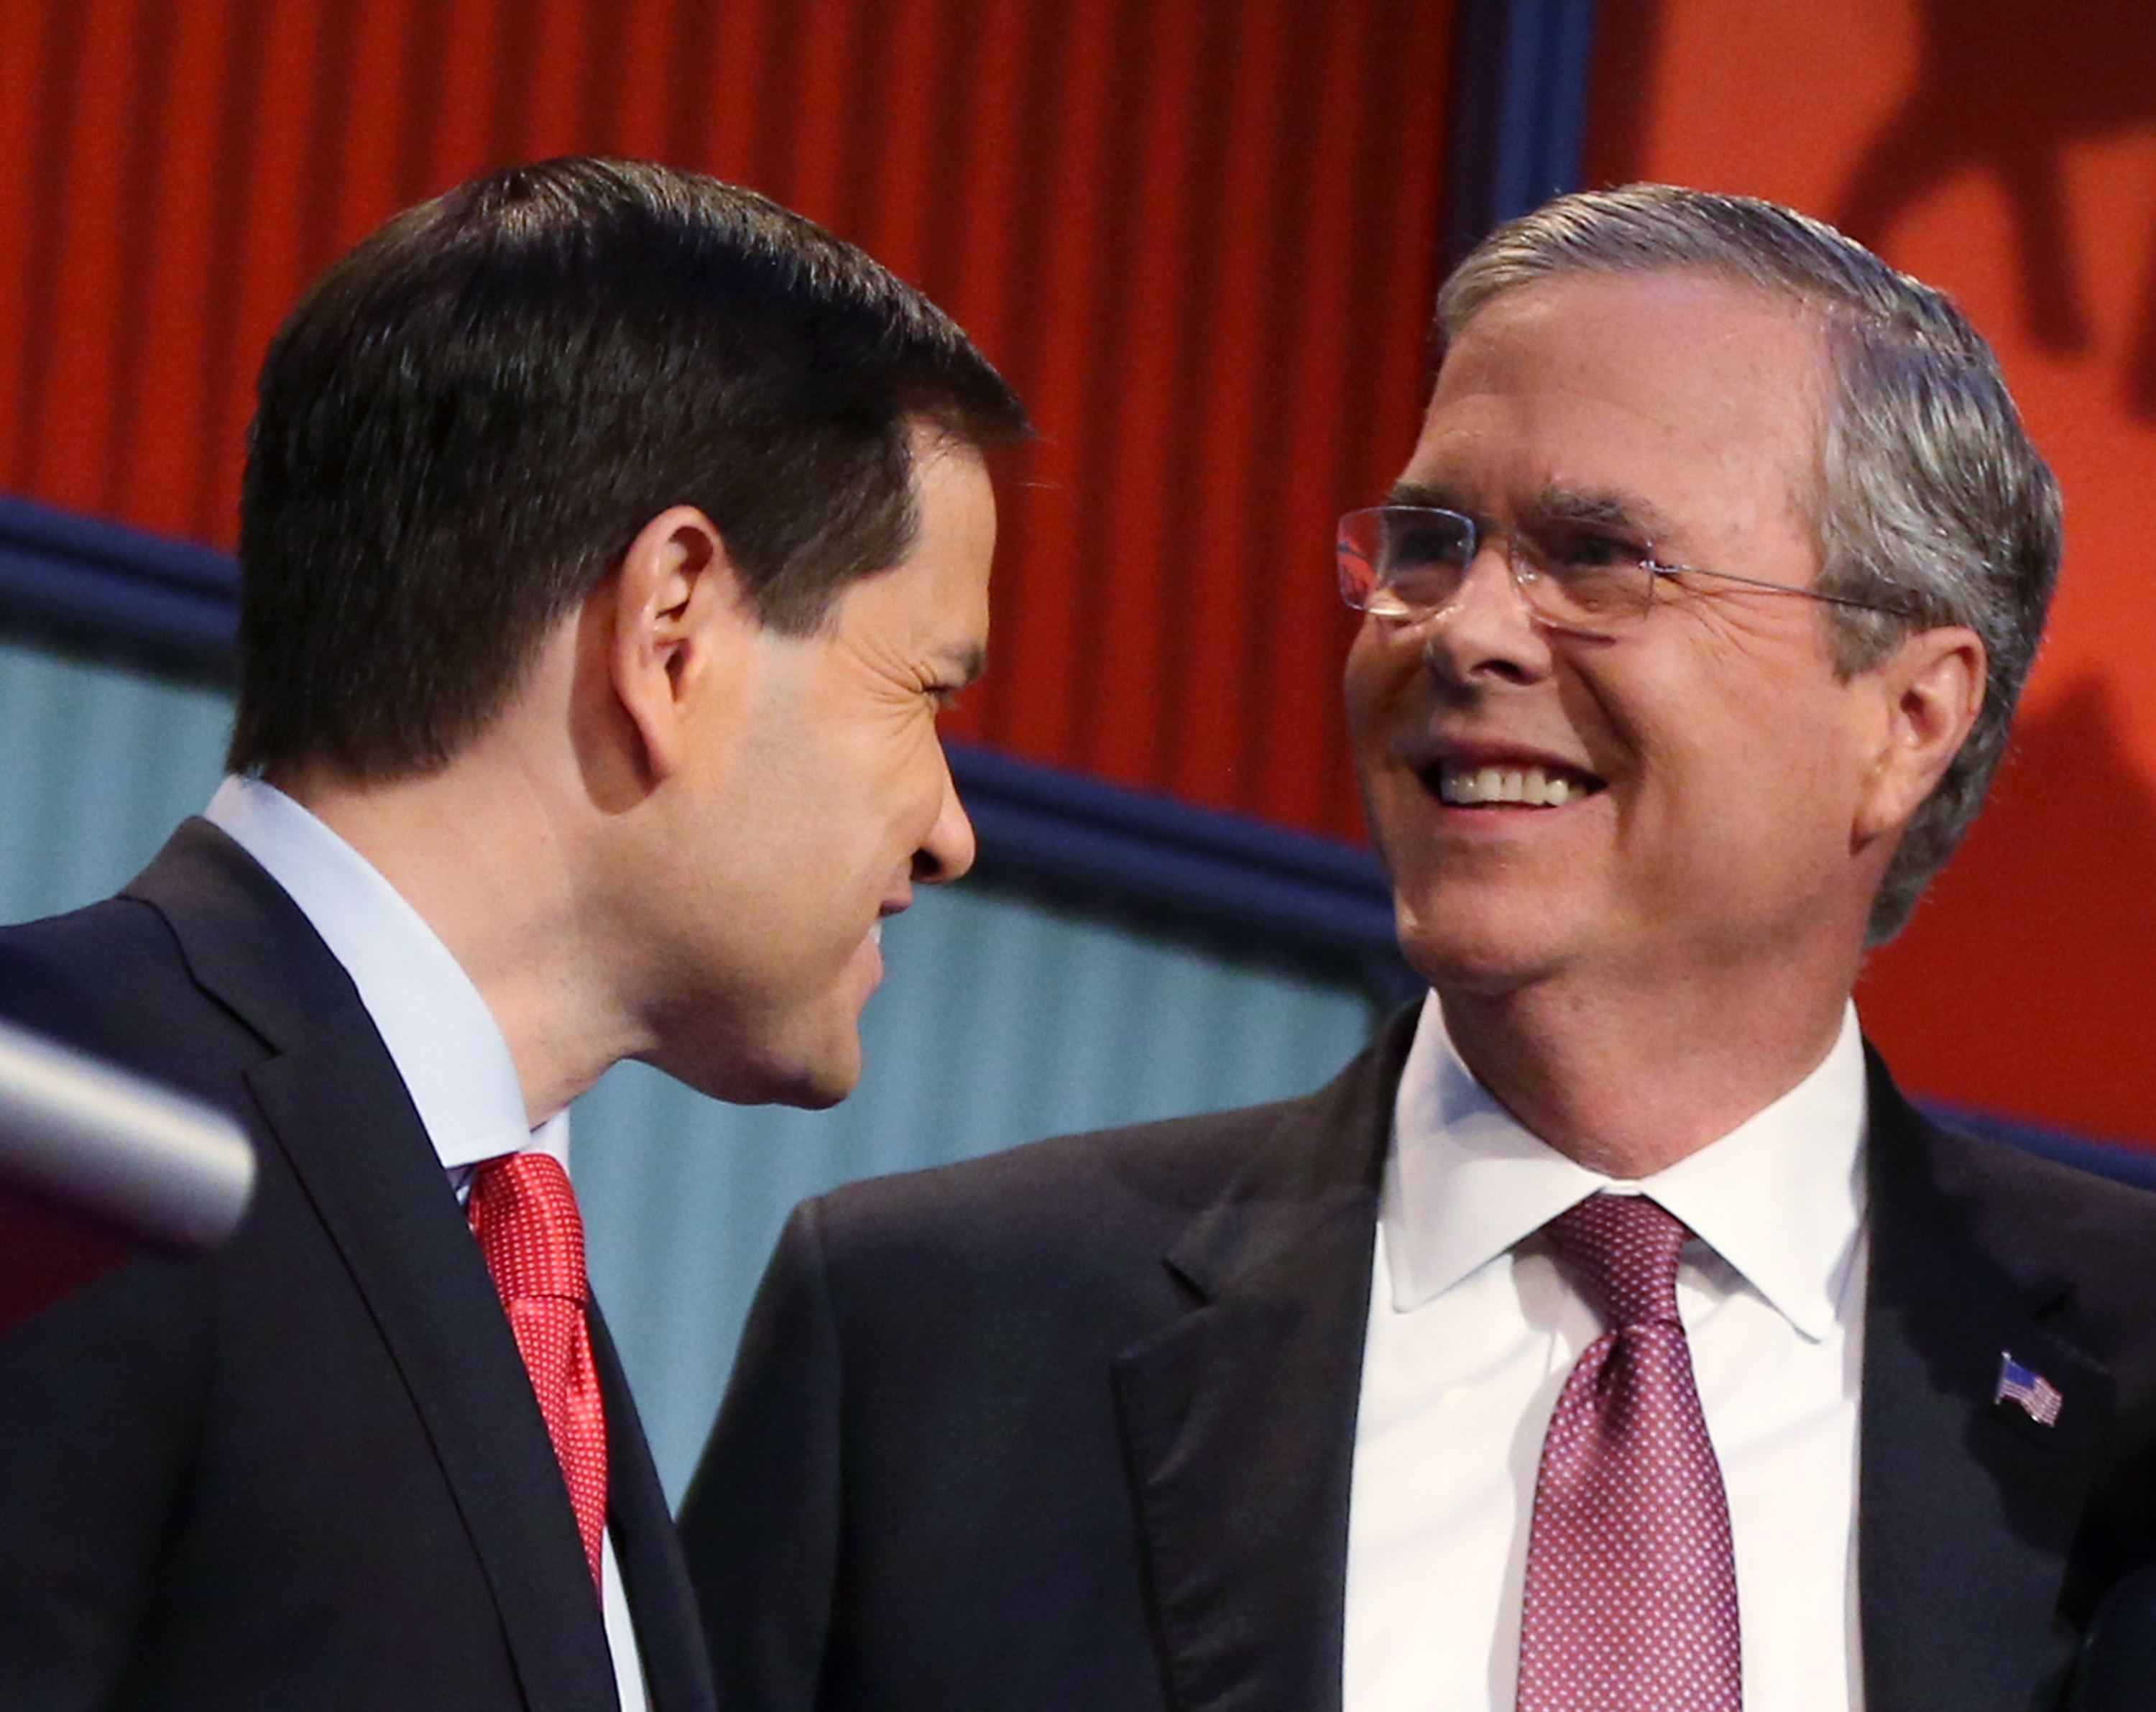 FILE - In this Aug. 6, 2015, photo, Republican presidential candidates Marco Rubio, left, and Jeb Bush talk during a break during the first Republican presidential debate at the Quicken Loans Arena in Cleveland, Ohio.